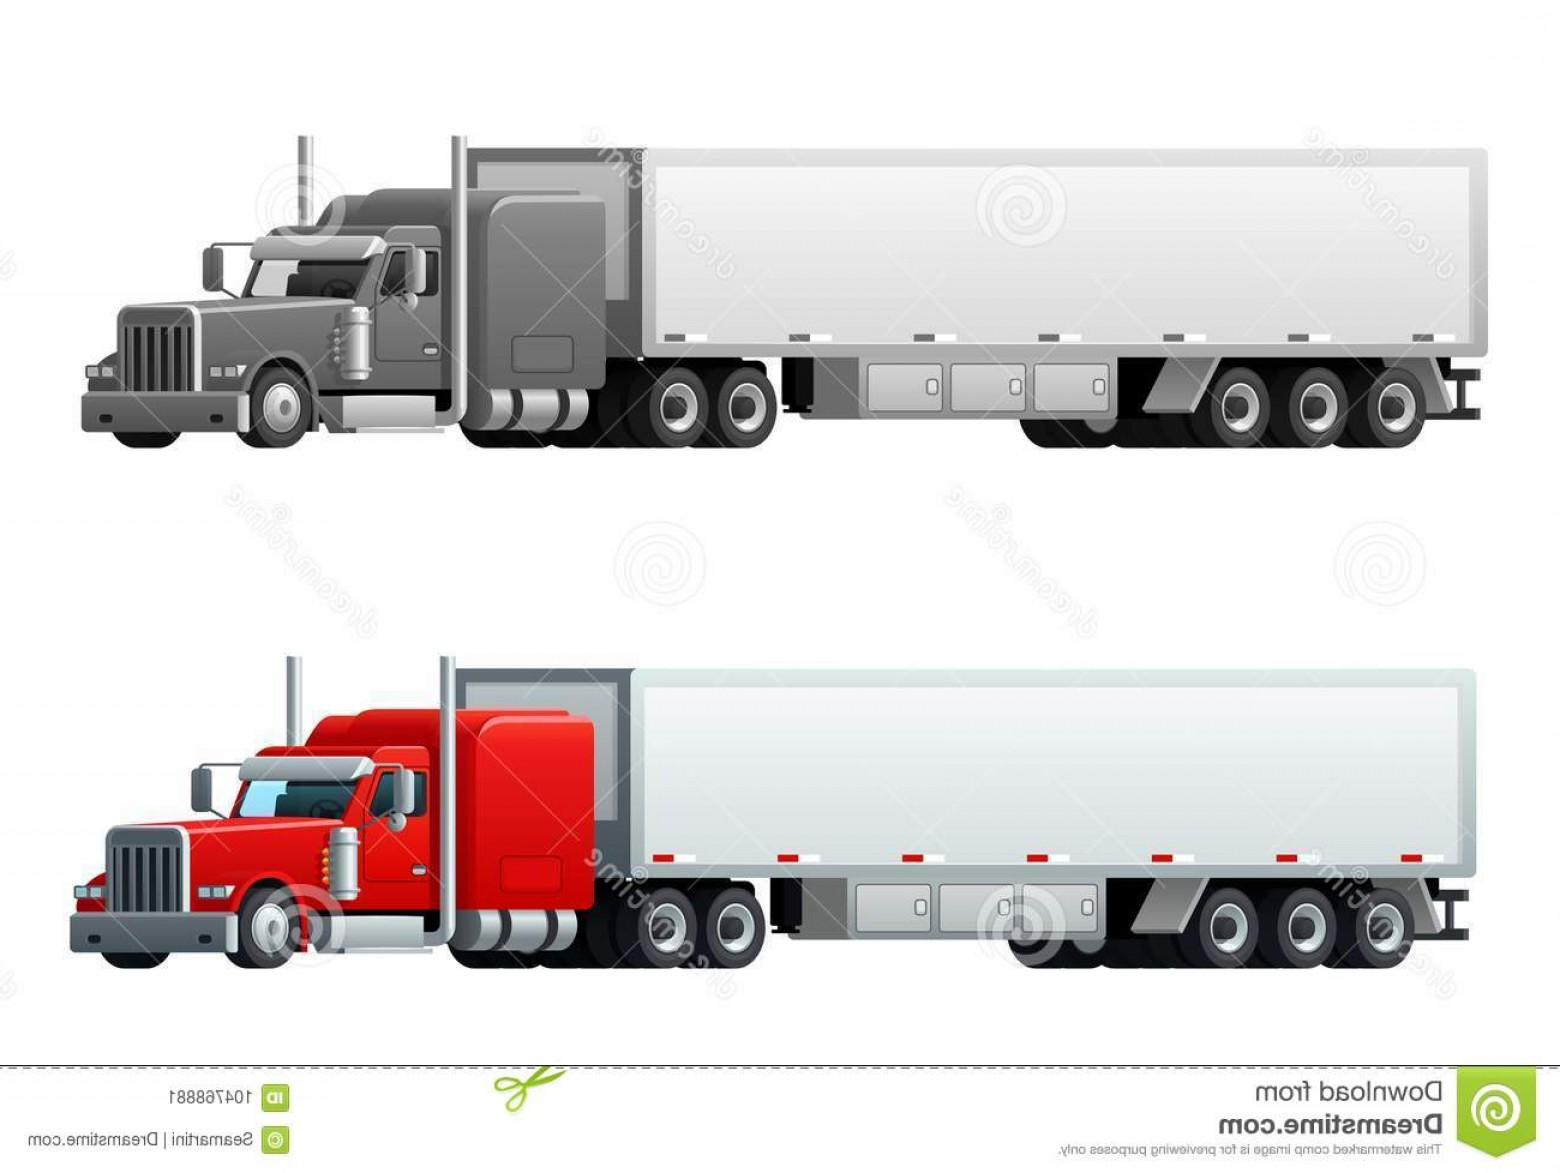 Vector Truck And Trailer Hauling: Trailer Trucks Long Vehicle Transport Delivery Transportation Load Cars Cargo Shipment Freight Lorry Trailers Logistics Image